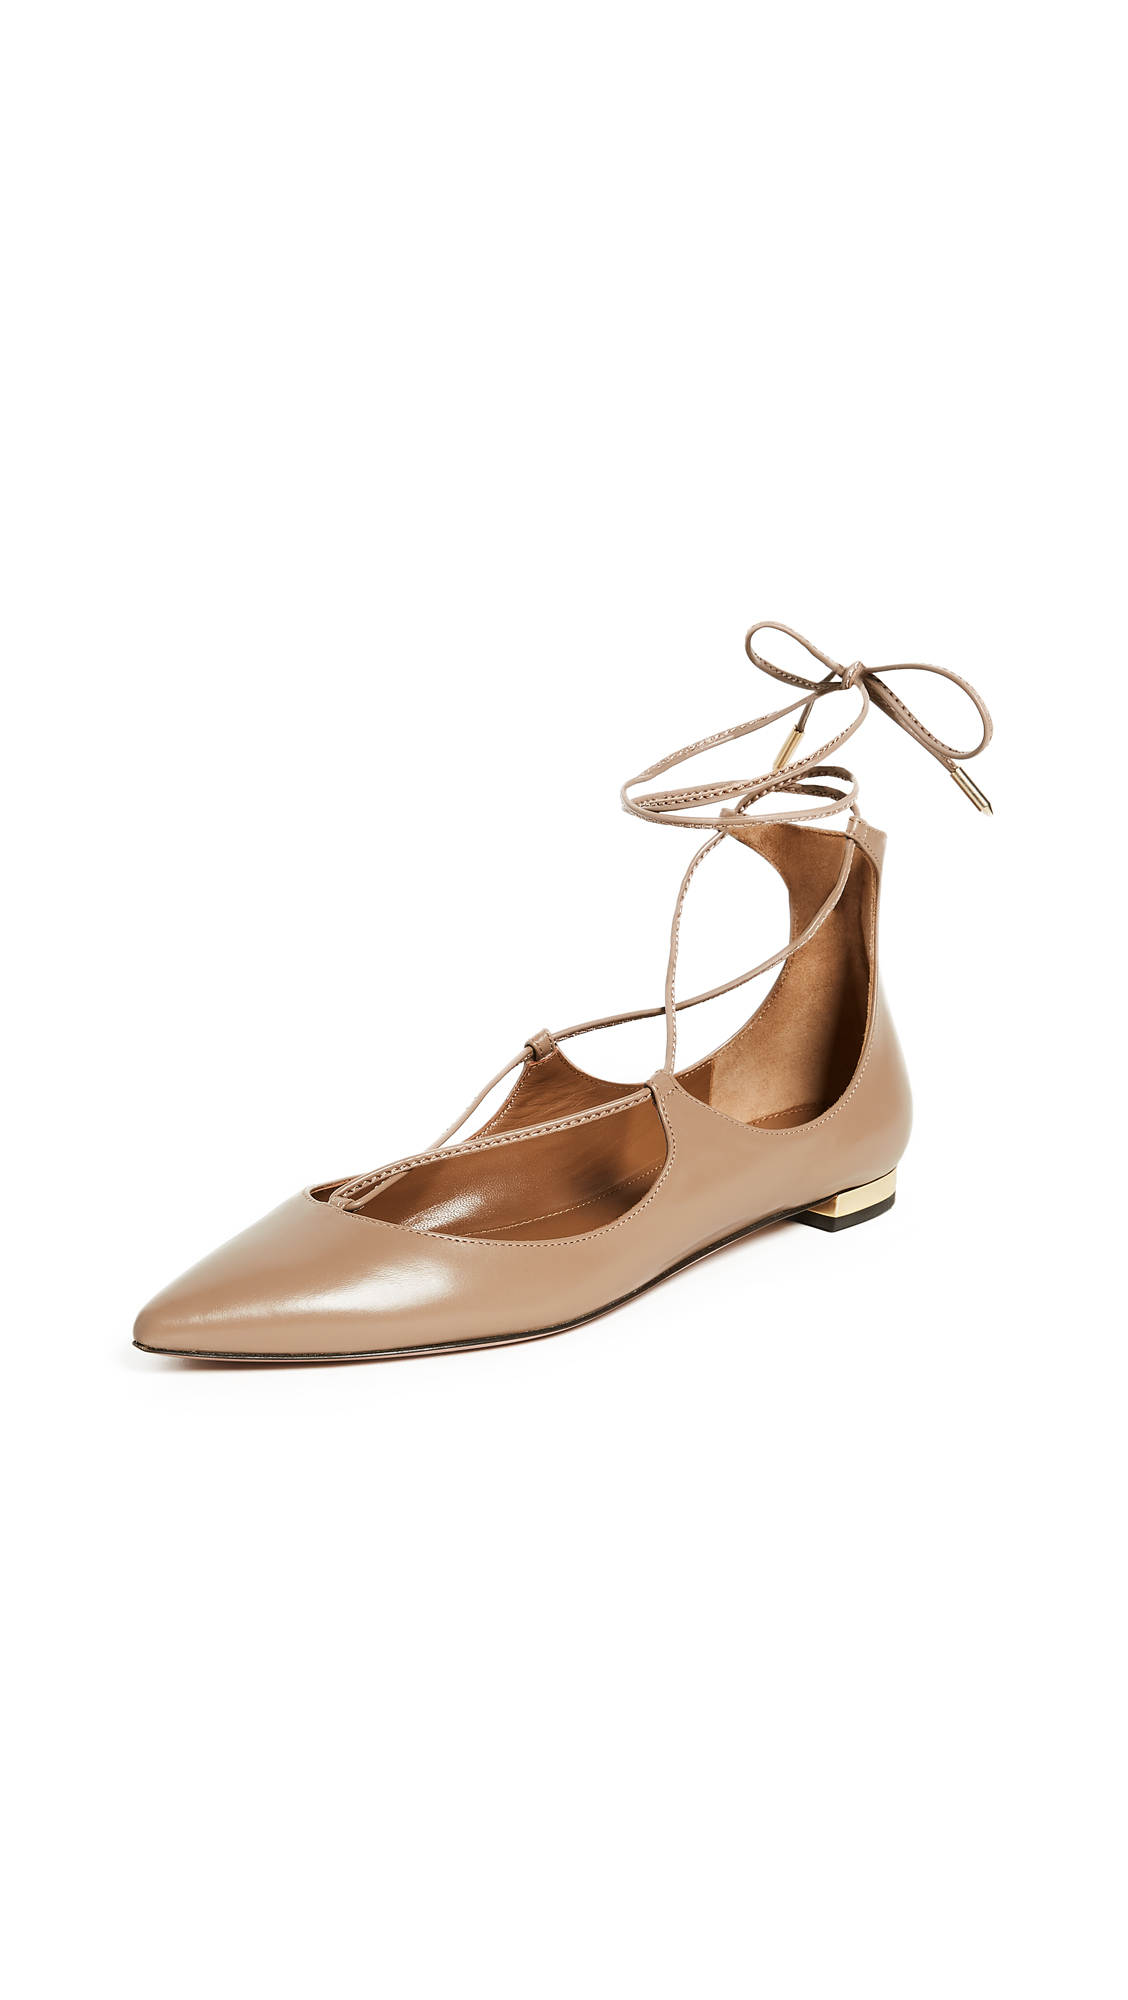 Aquazzura Christy Flats - Biscotto